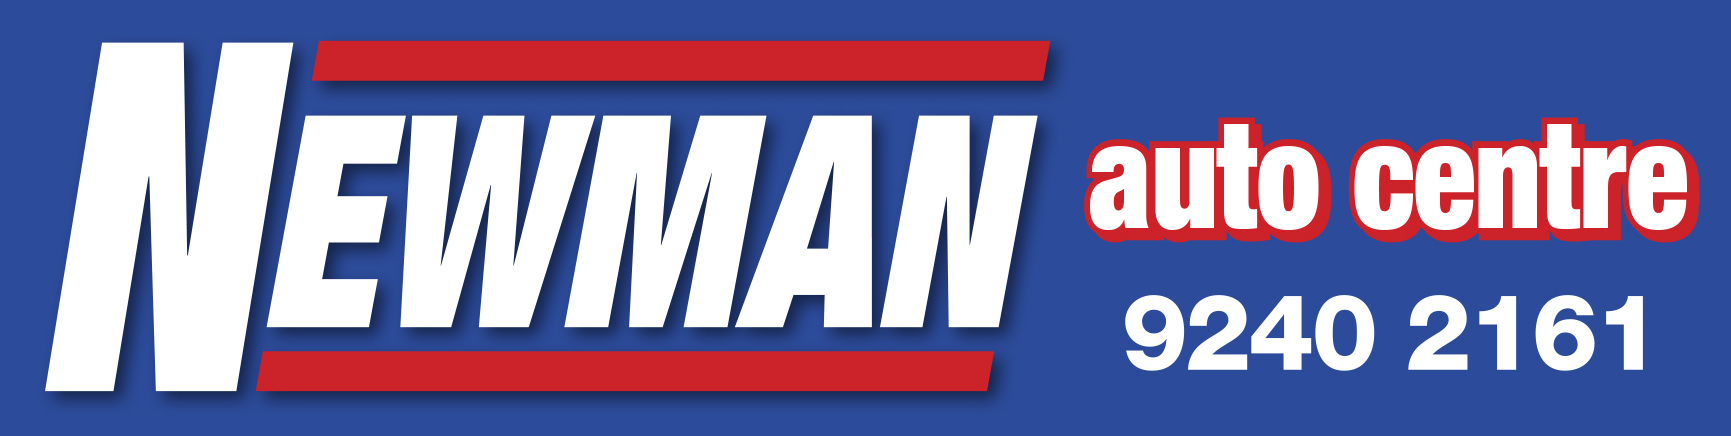 Newman Auto Centre - Auto Electrician, Airconditioning